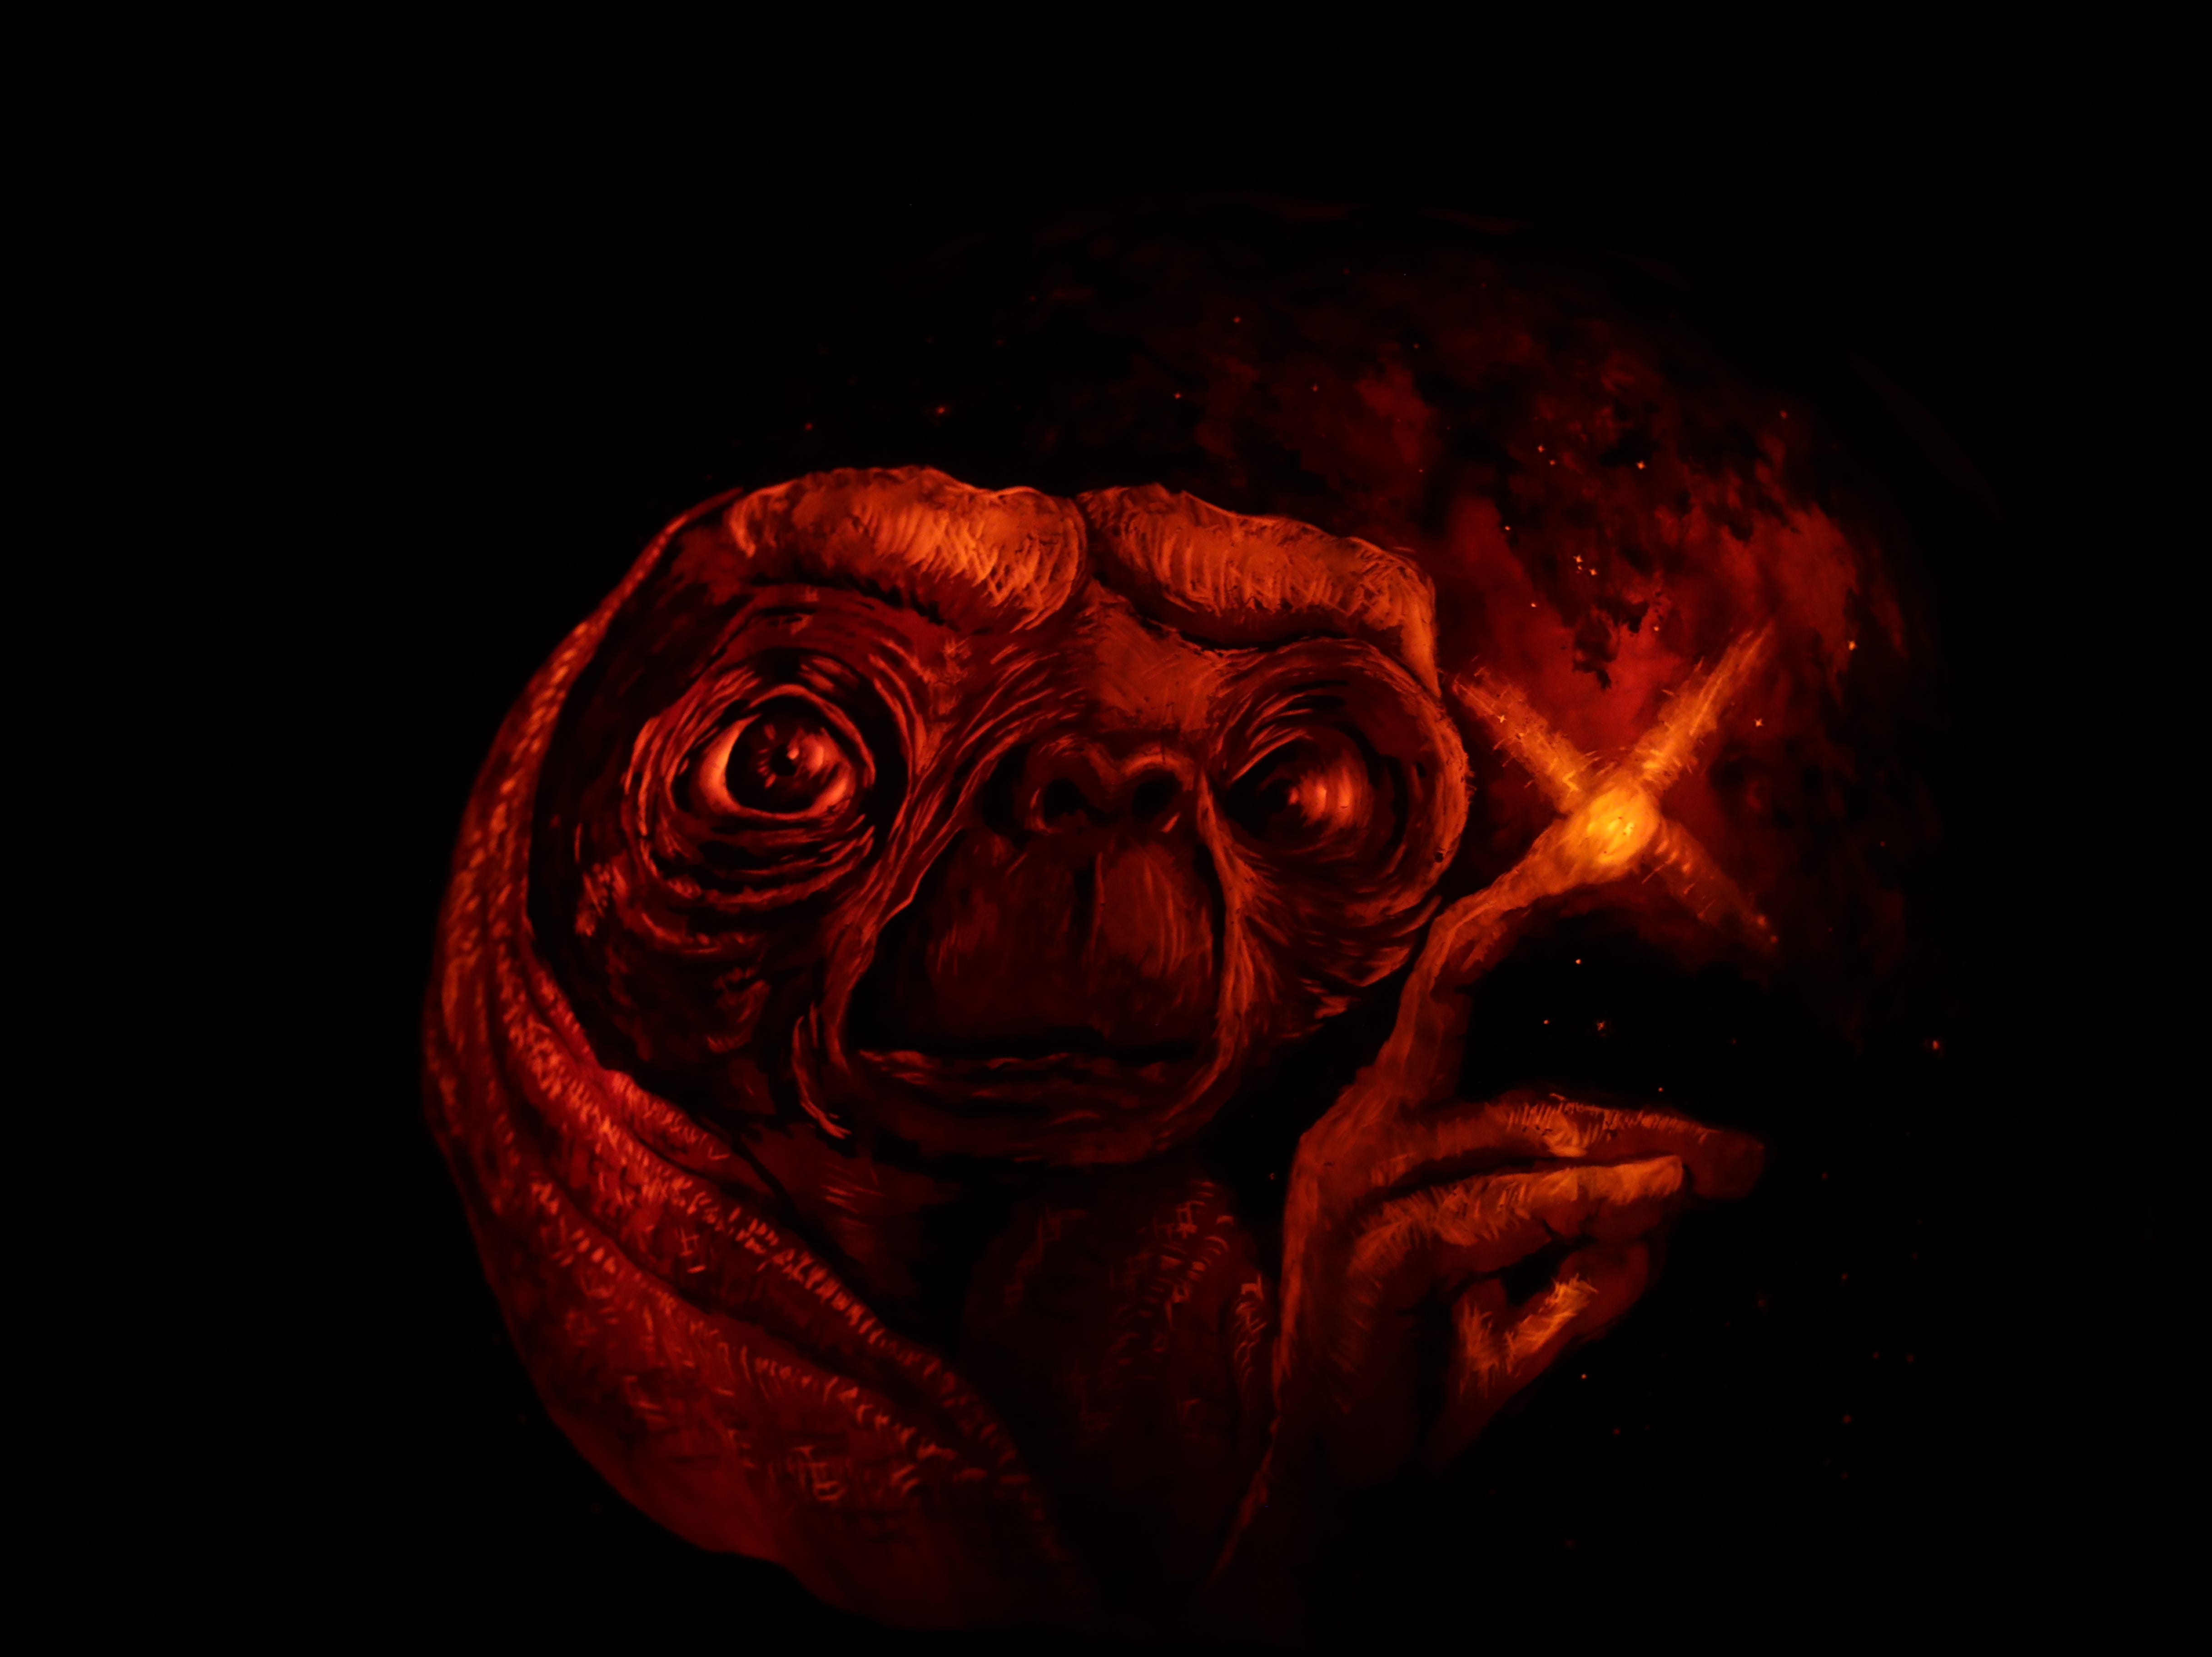 E.T. appears on a pumpkin at this year's Jack O' Lantern Spectacular. Oct. 9, 2018